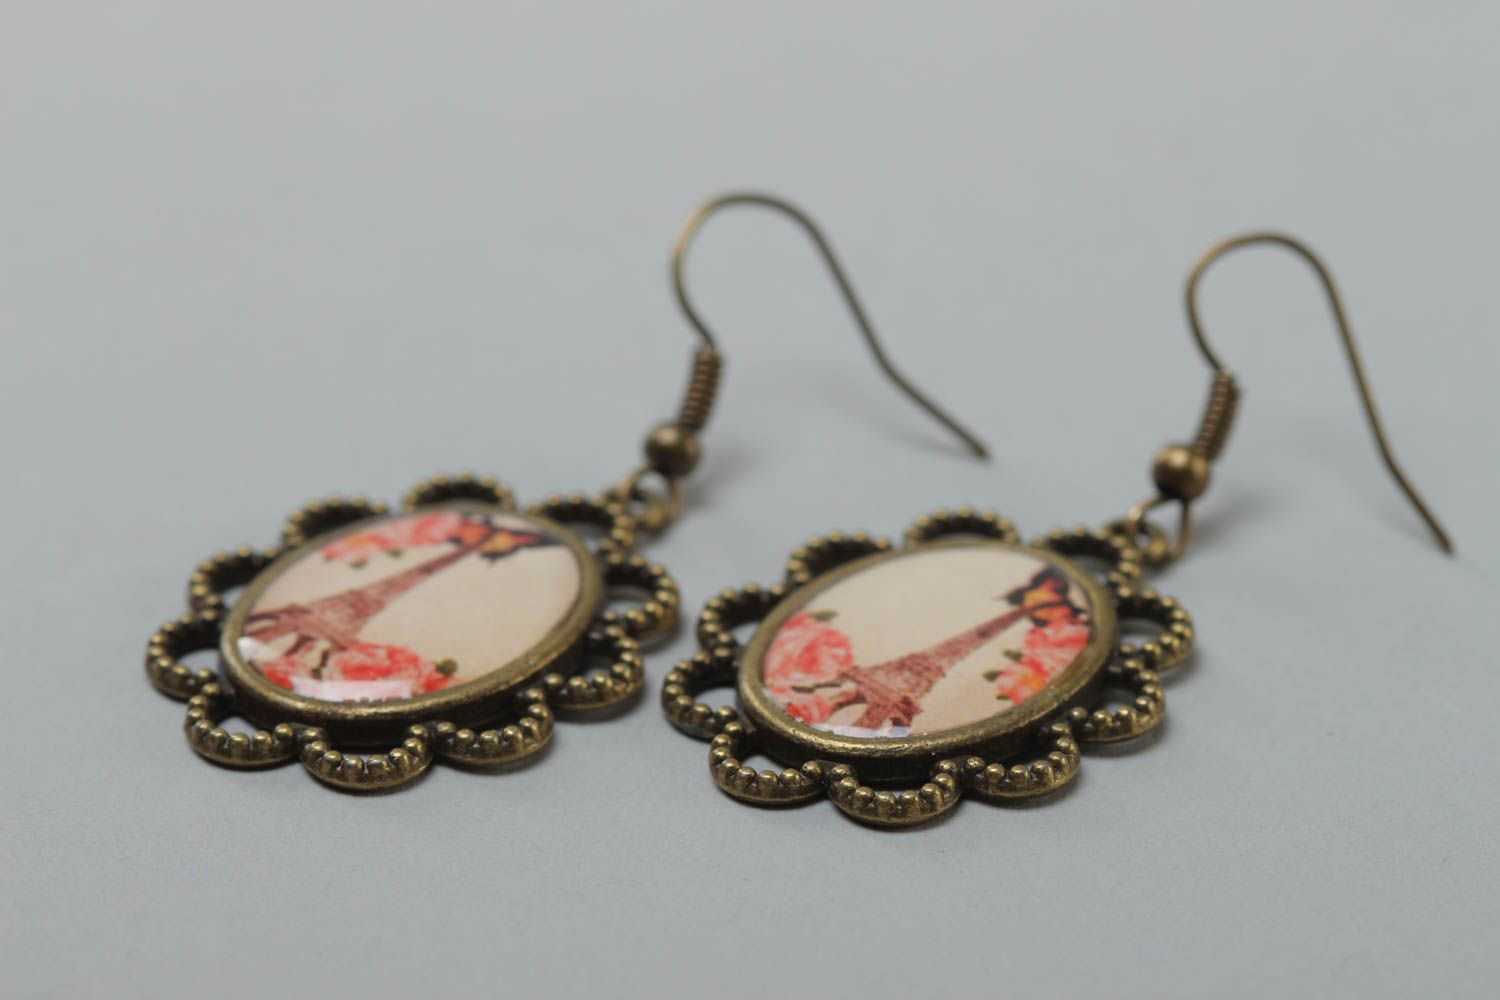 Handmade vintage oval earrings made of metal and glass glaze with a print of Eiffel tower photo 3